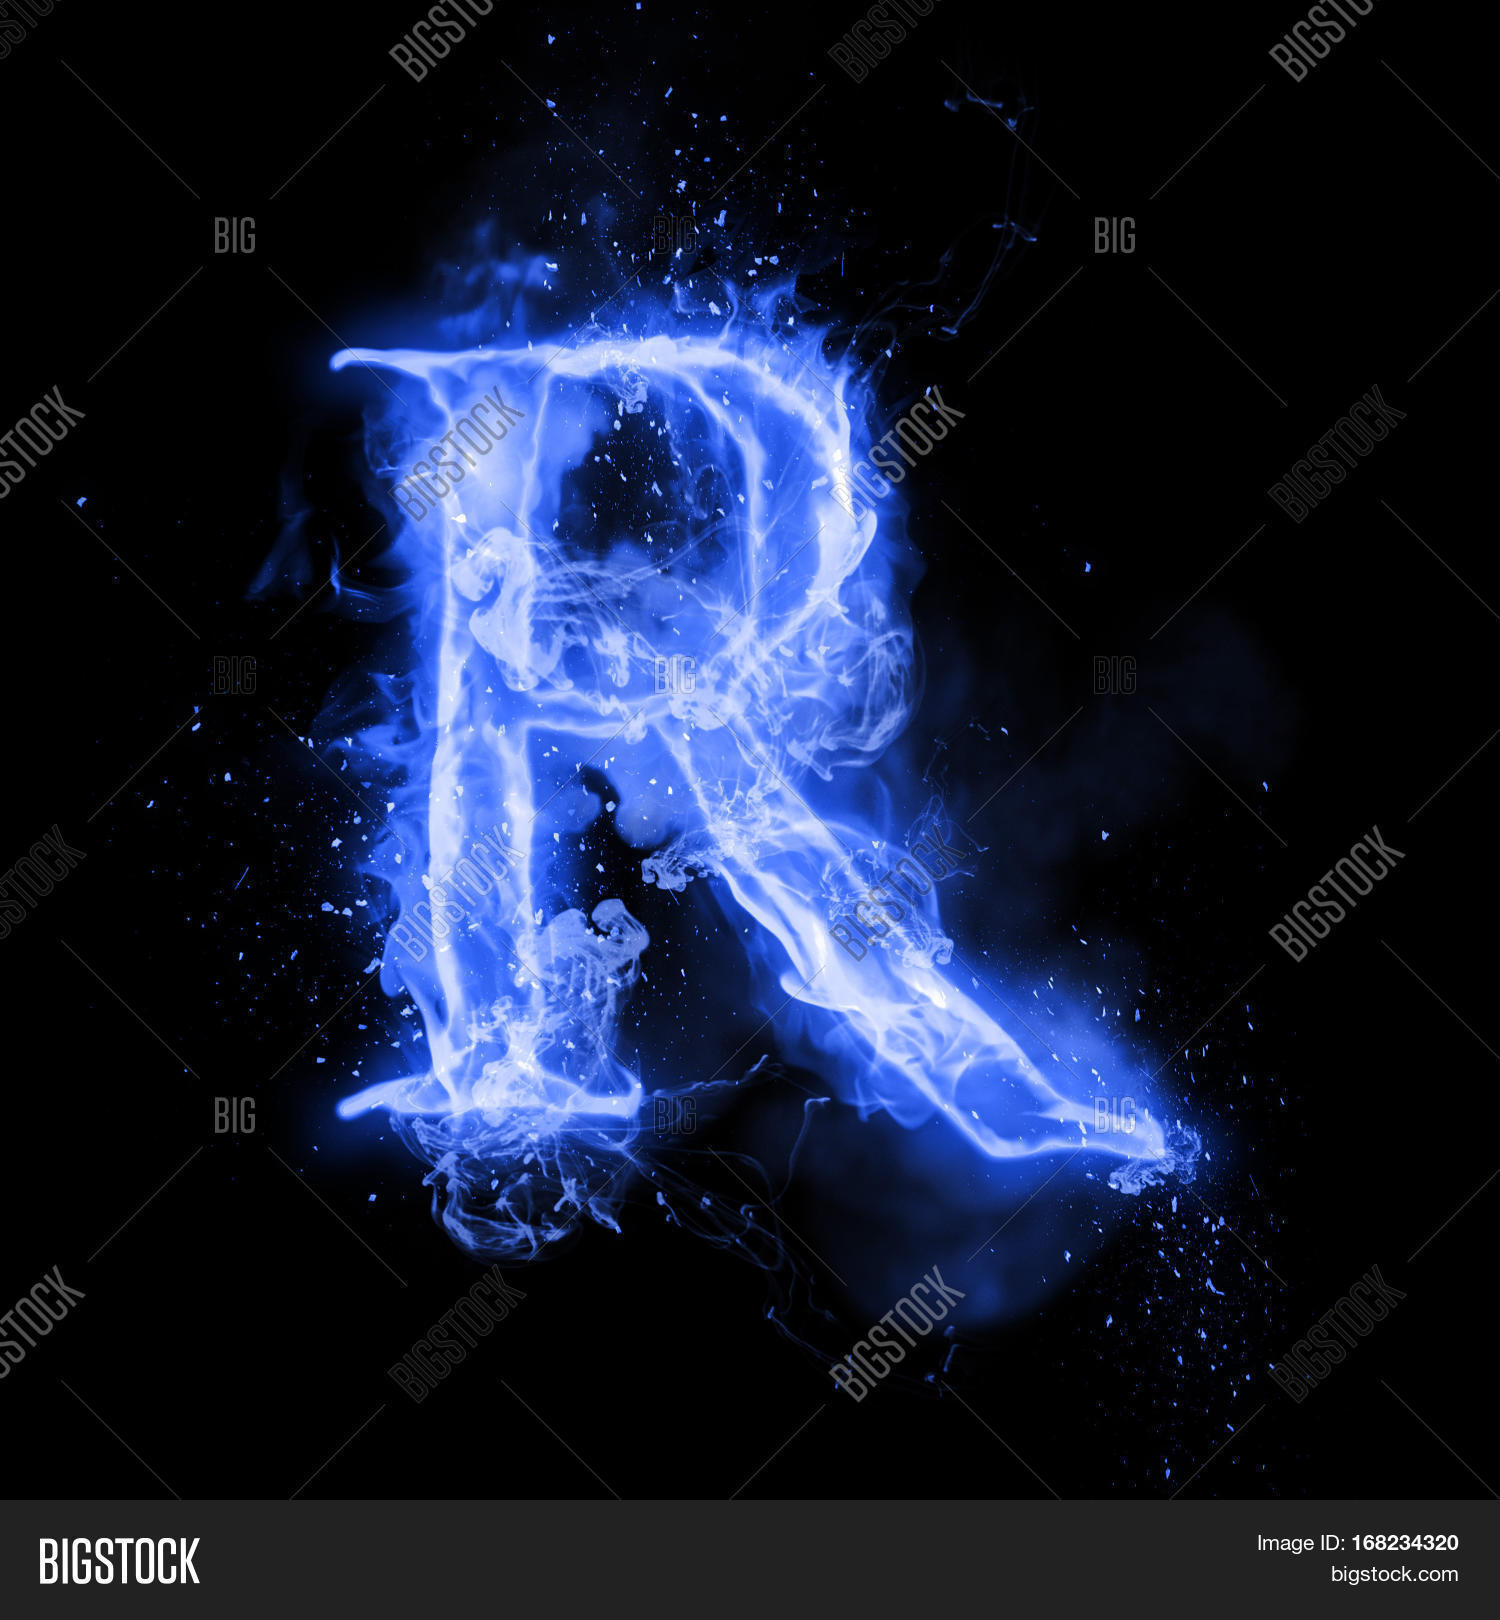 Fire Letter R Burning Image Photo Free Trial Bigstock